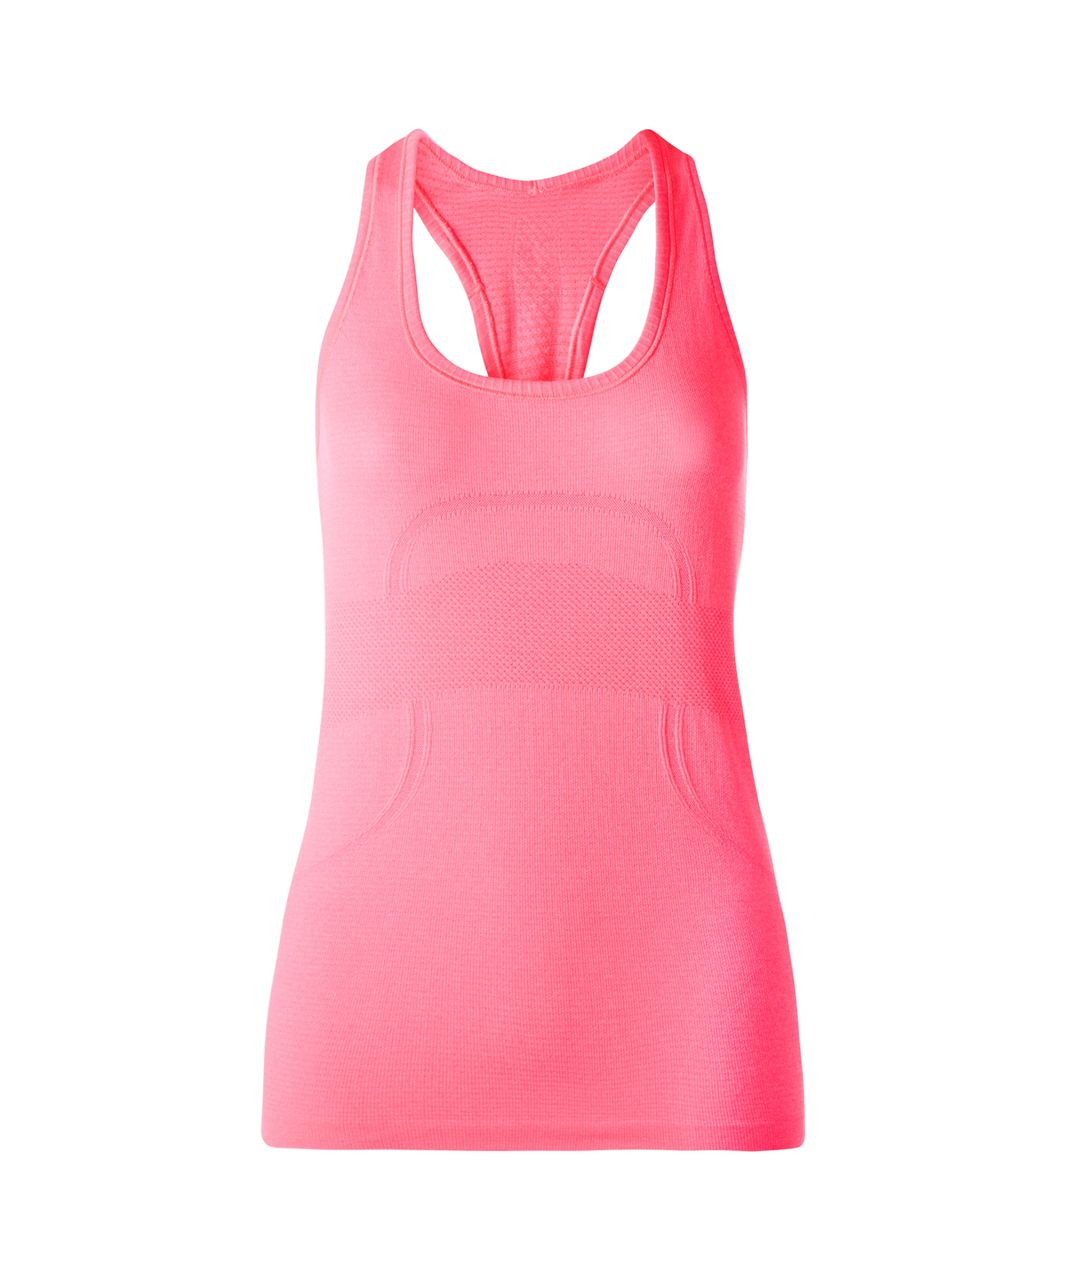 Lululemon Swiftly Tech Racerback - Heathered Neon Pink